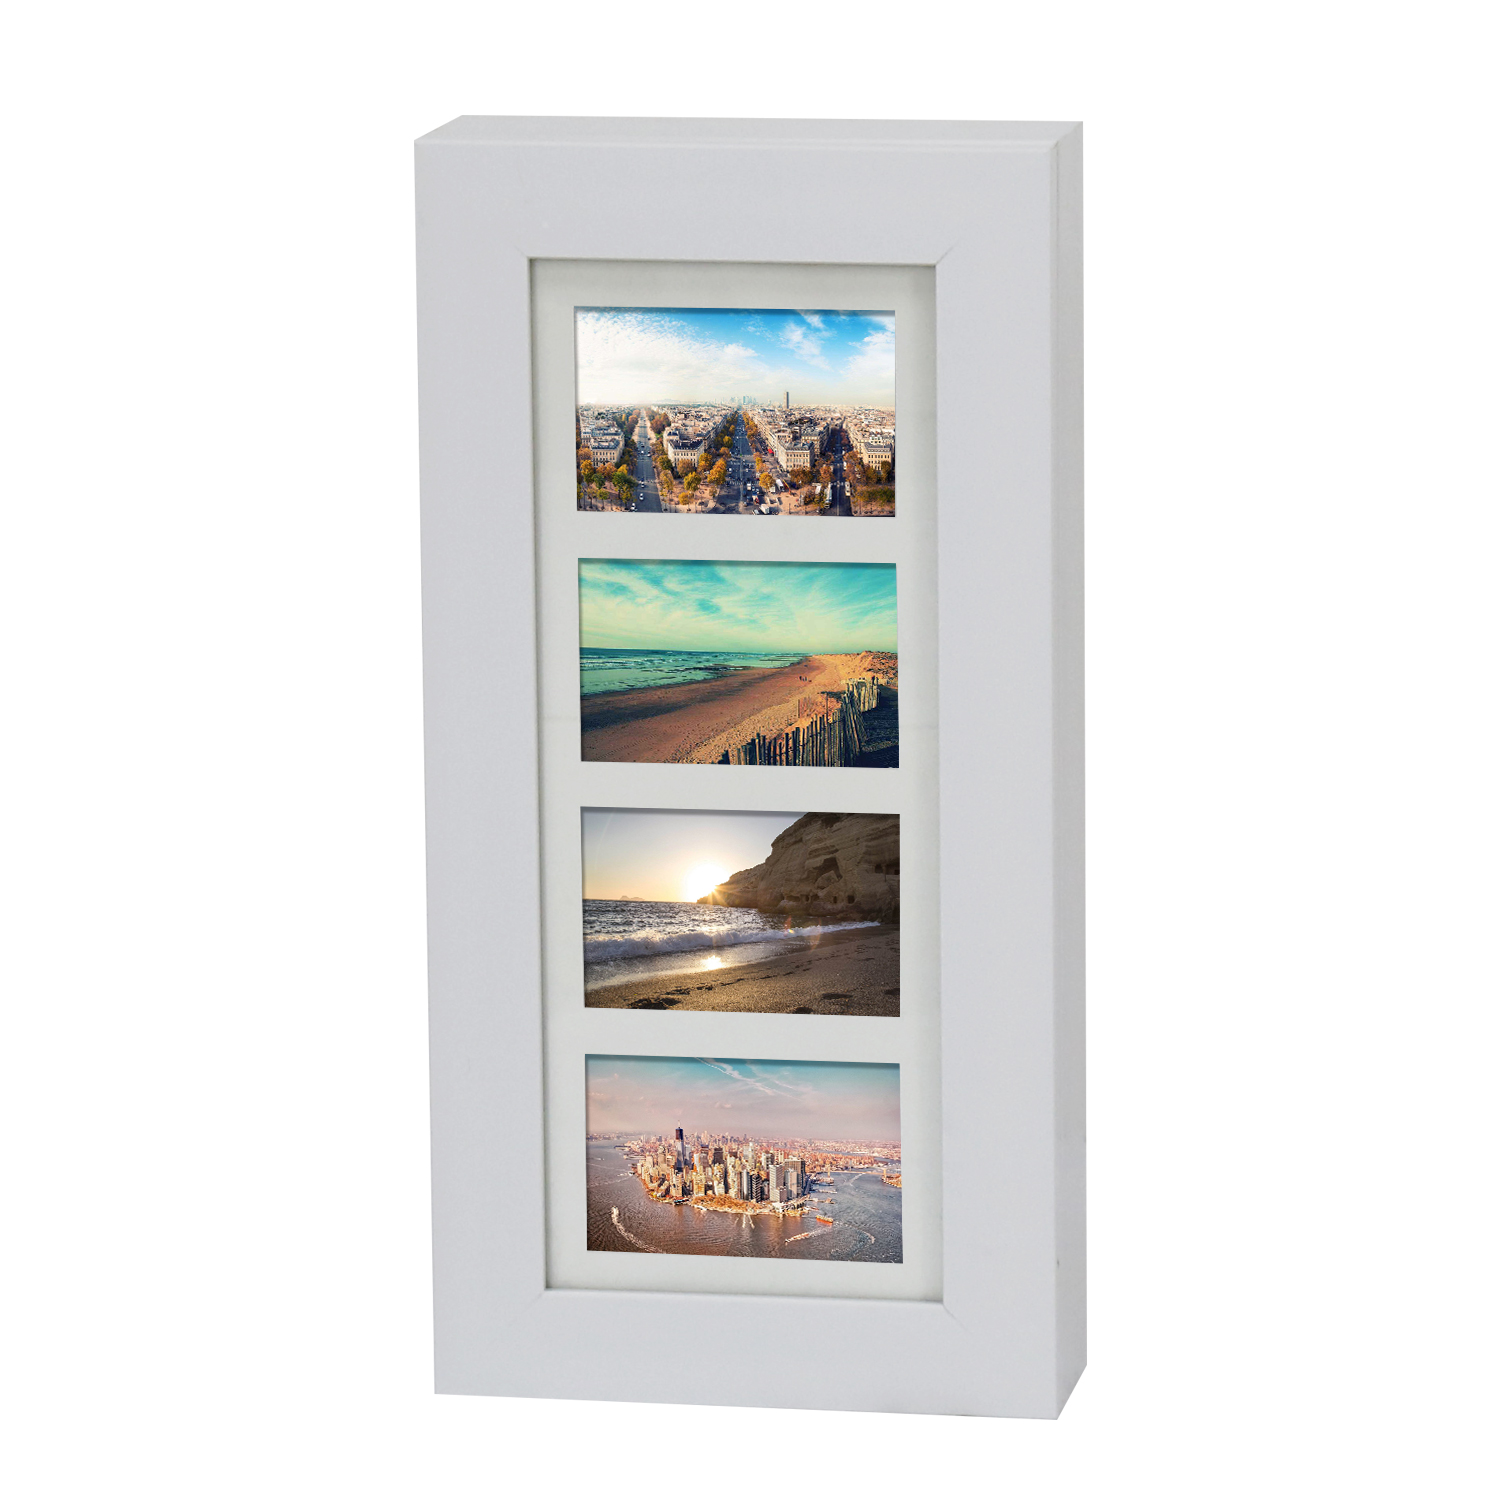 Lockable Wall Mount Mirrored Jewelry Cabinet Organizer Armoire ...